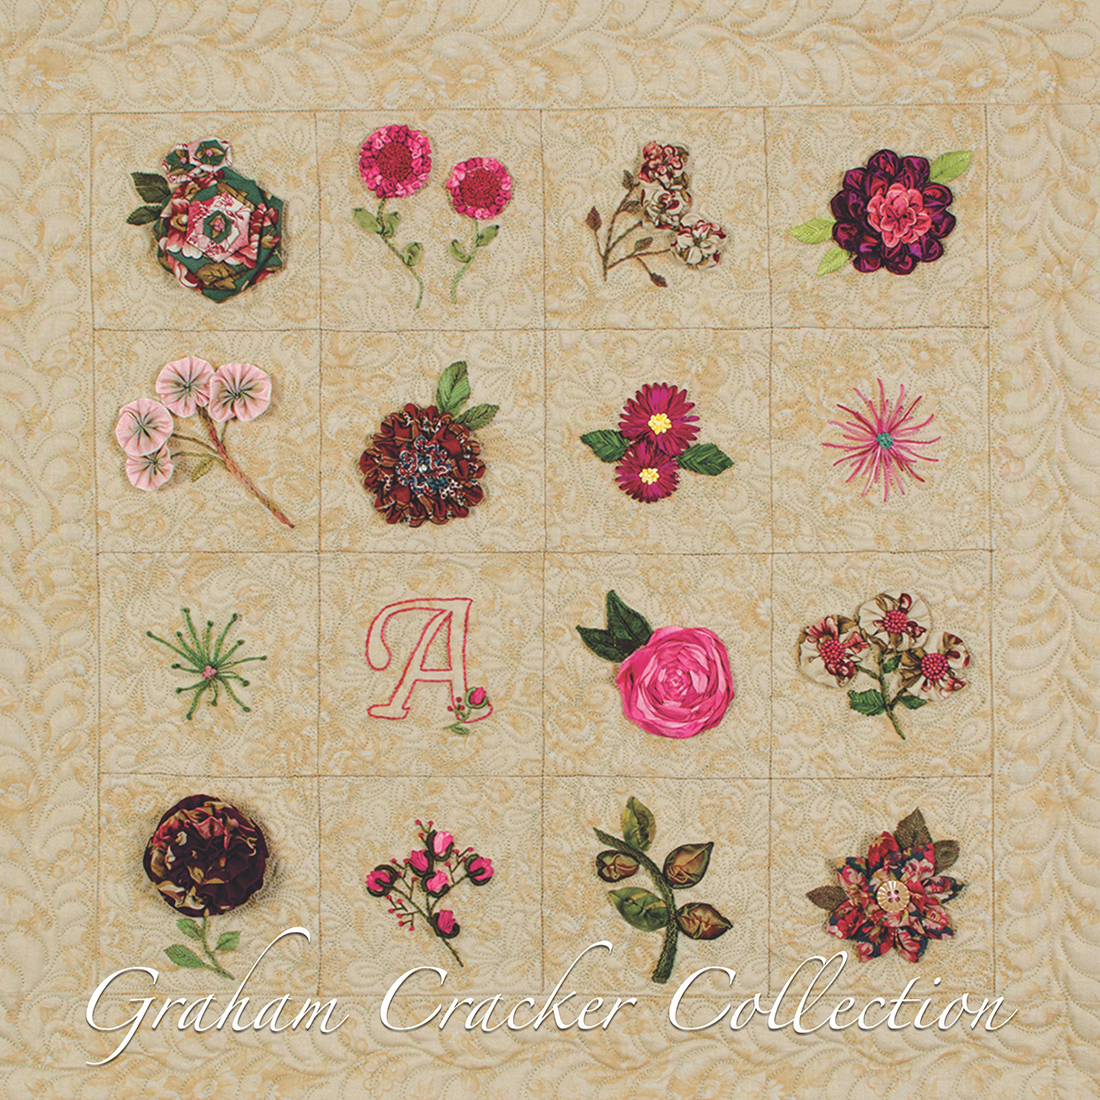 Free Patterns – Graham Cracker Collection